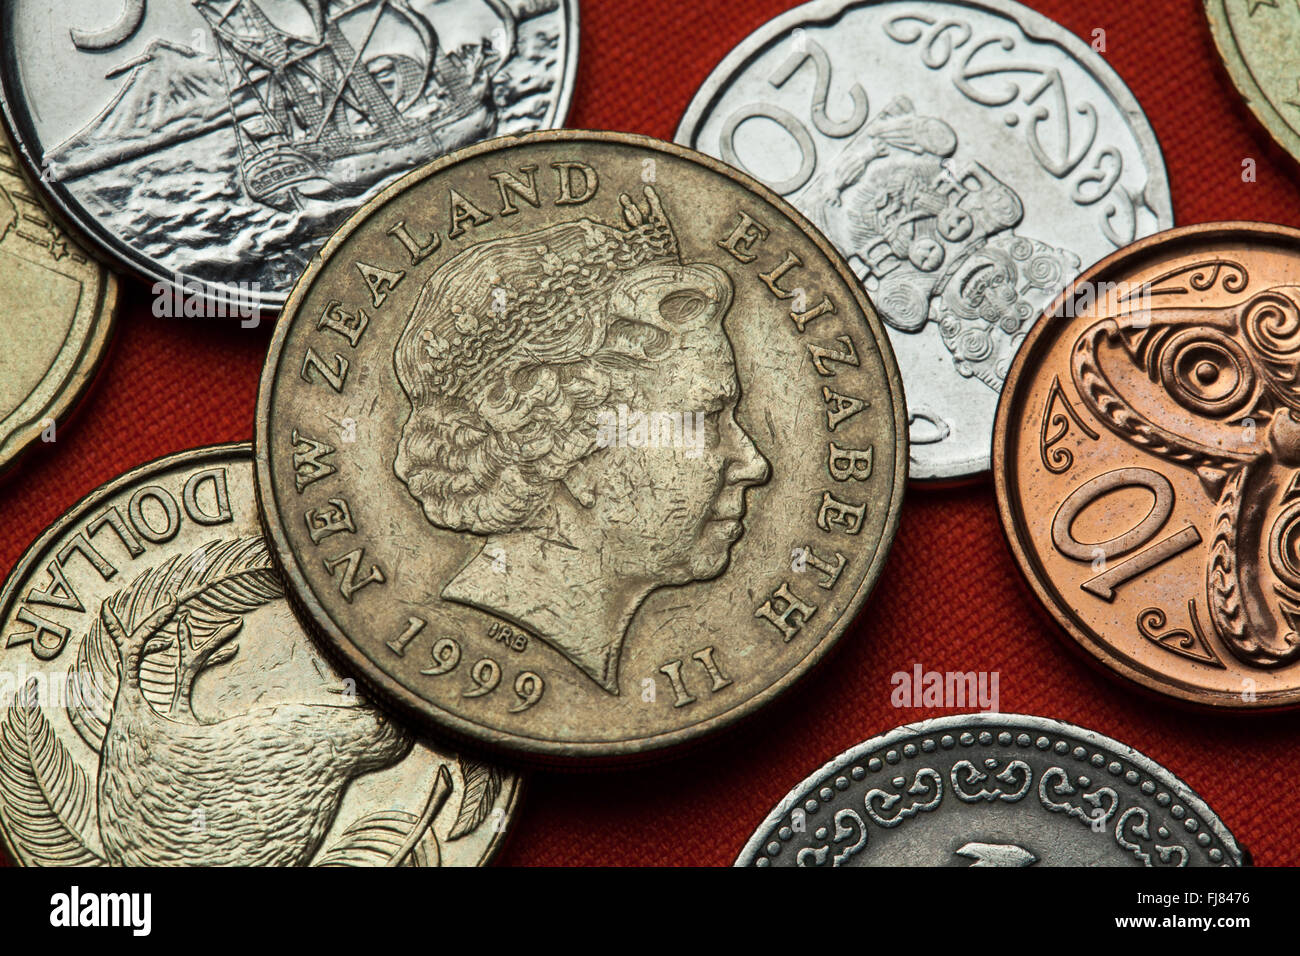 New Zealand Coin Stock Photos & New Zealand Coin Stock